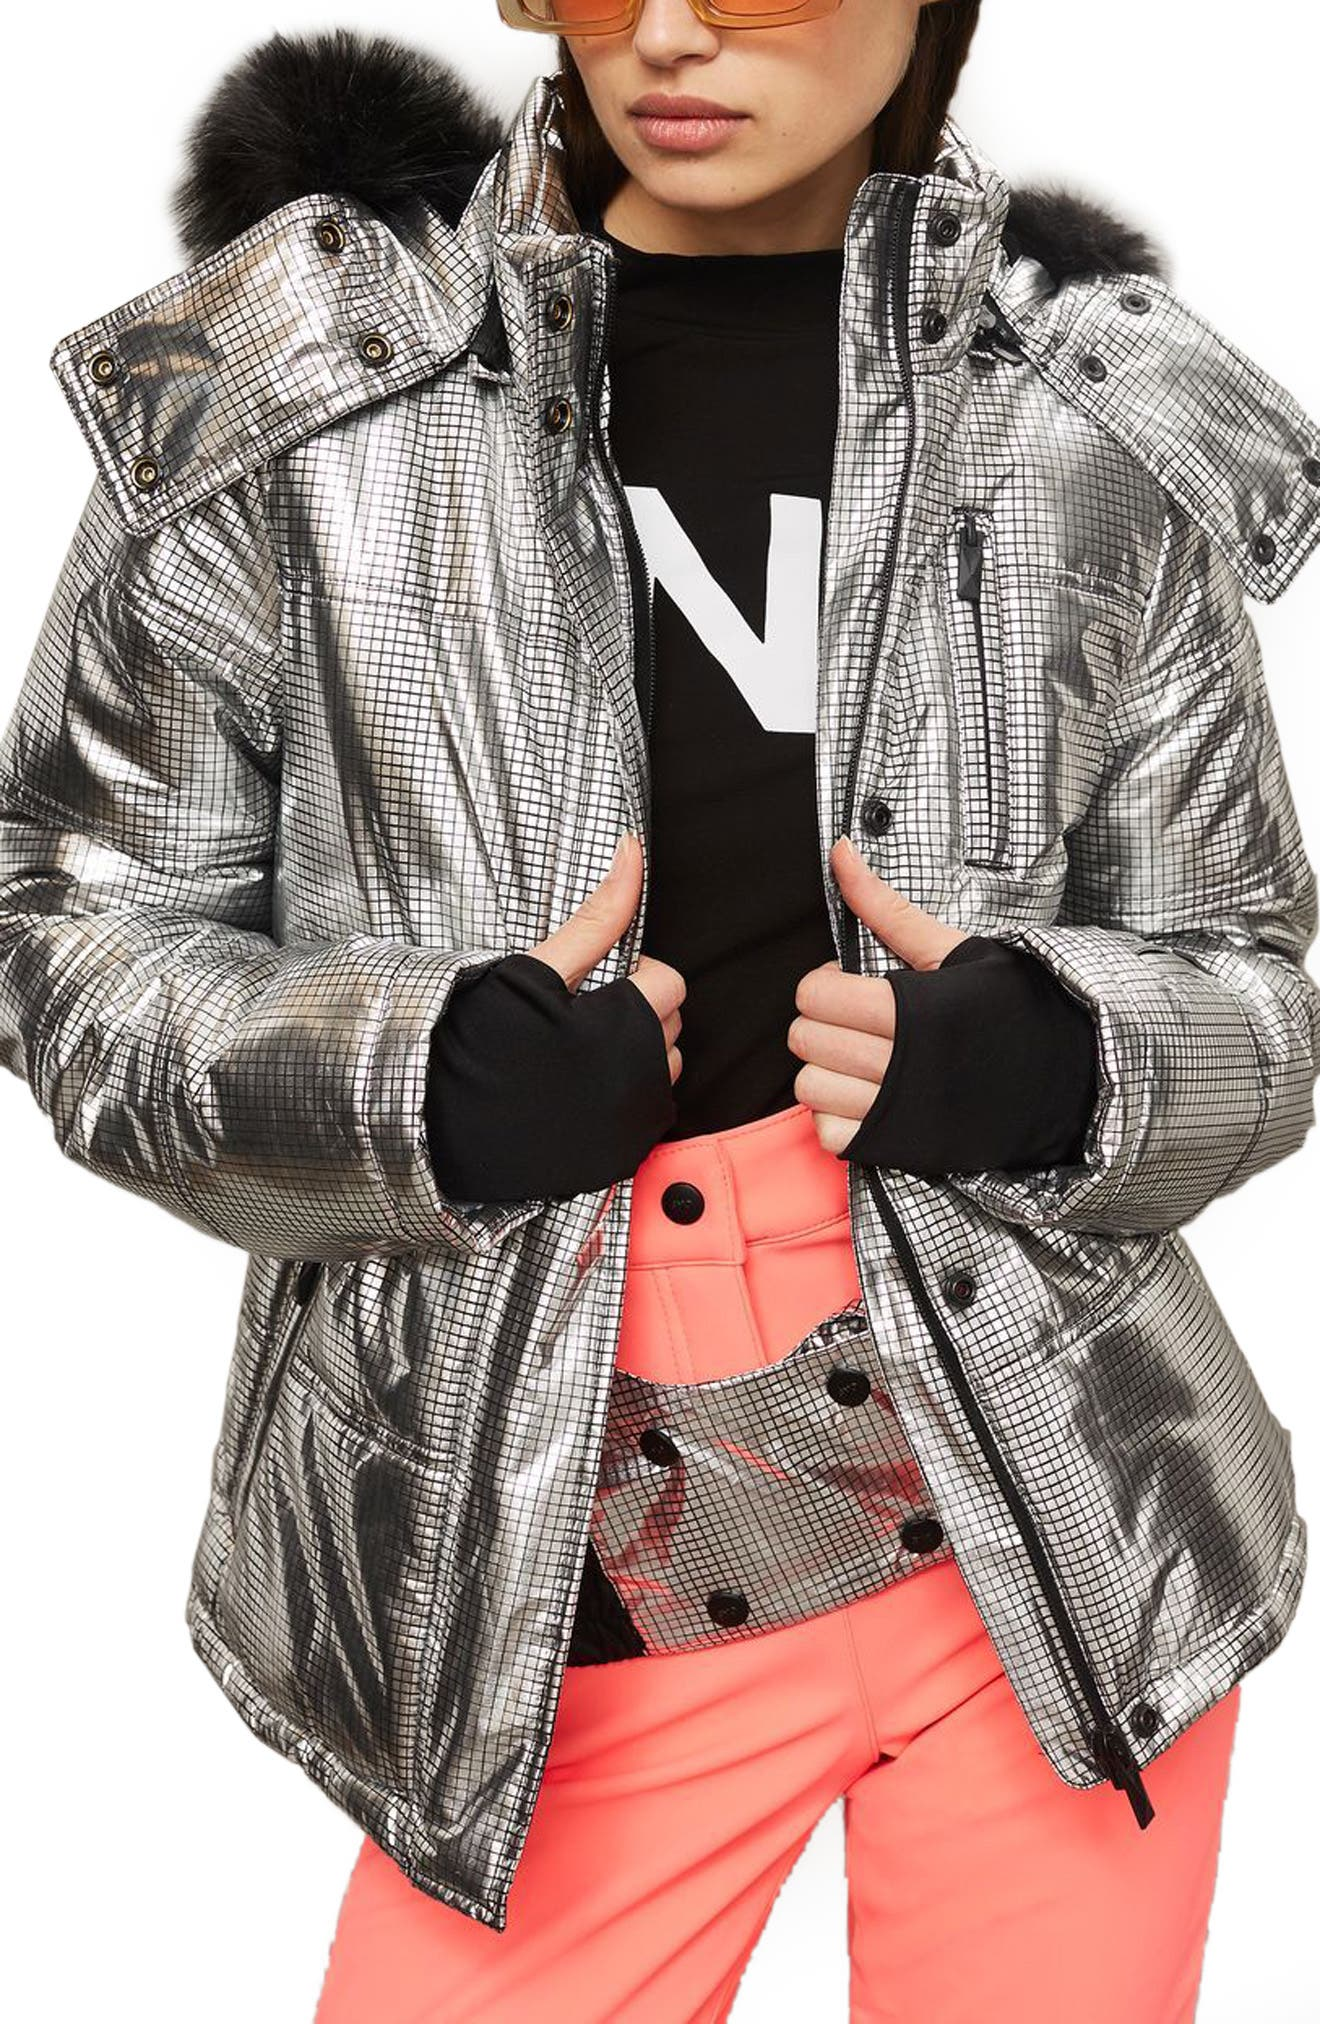 SNO Rio Faux Fur Hood Metallic Puffer Jacket,                         Main,                         color, 040